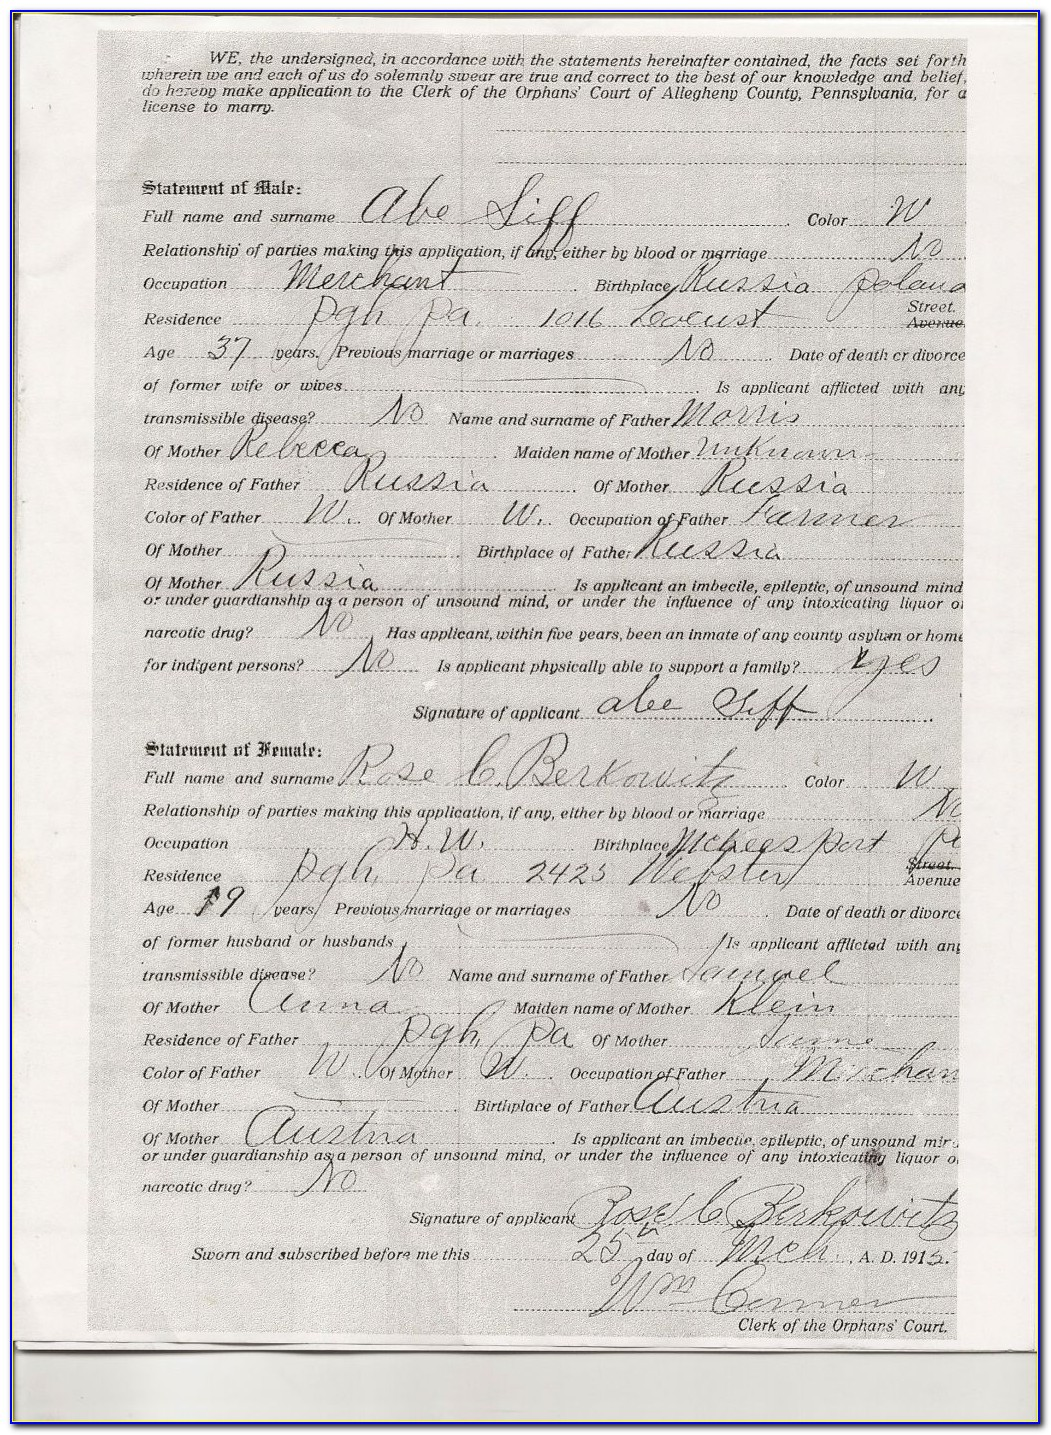 Allegheny County Birth Certificate Copy